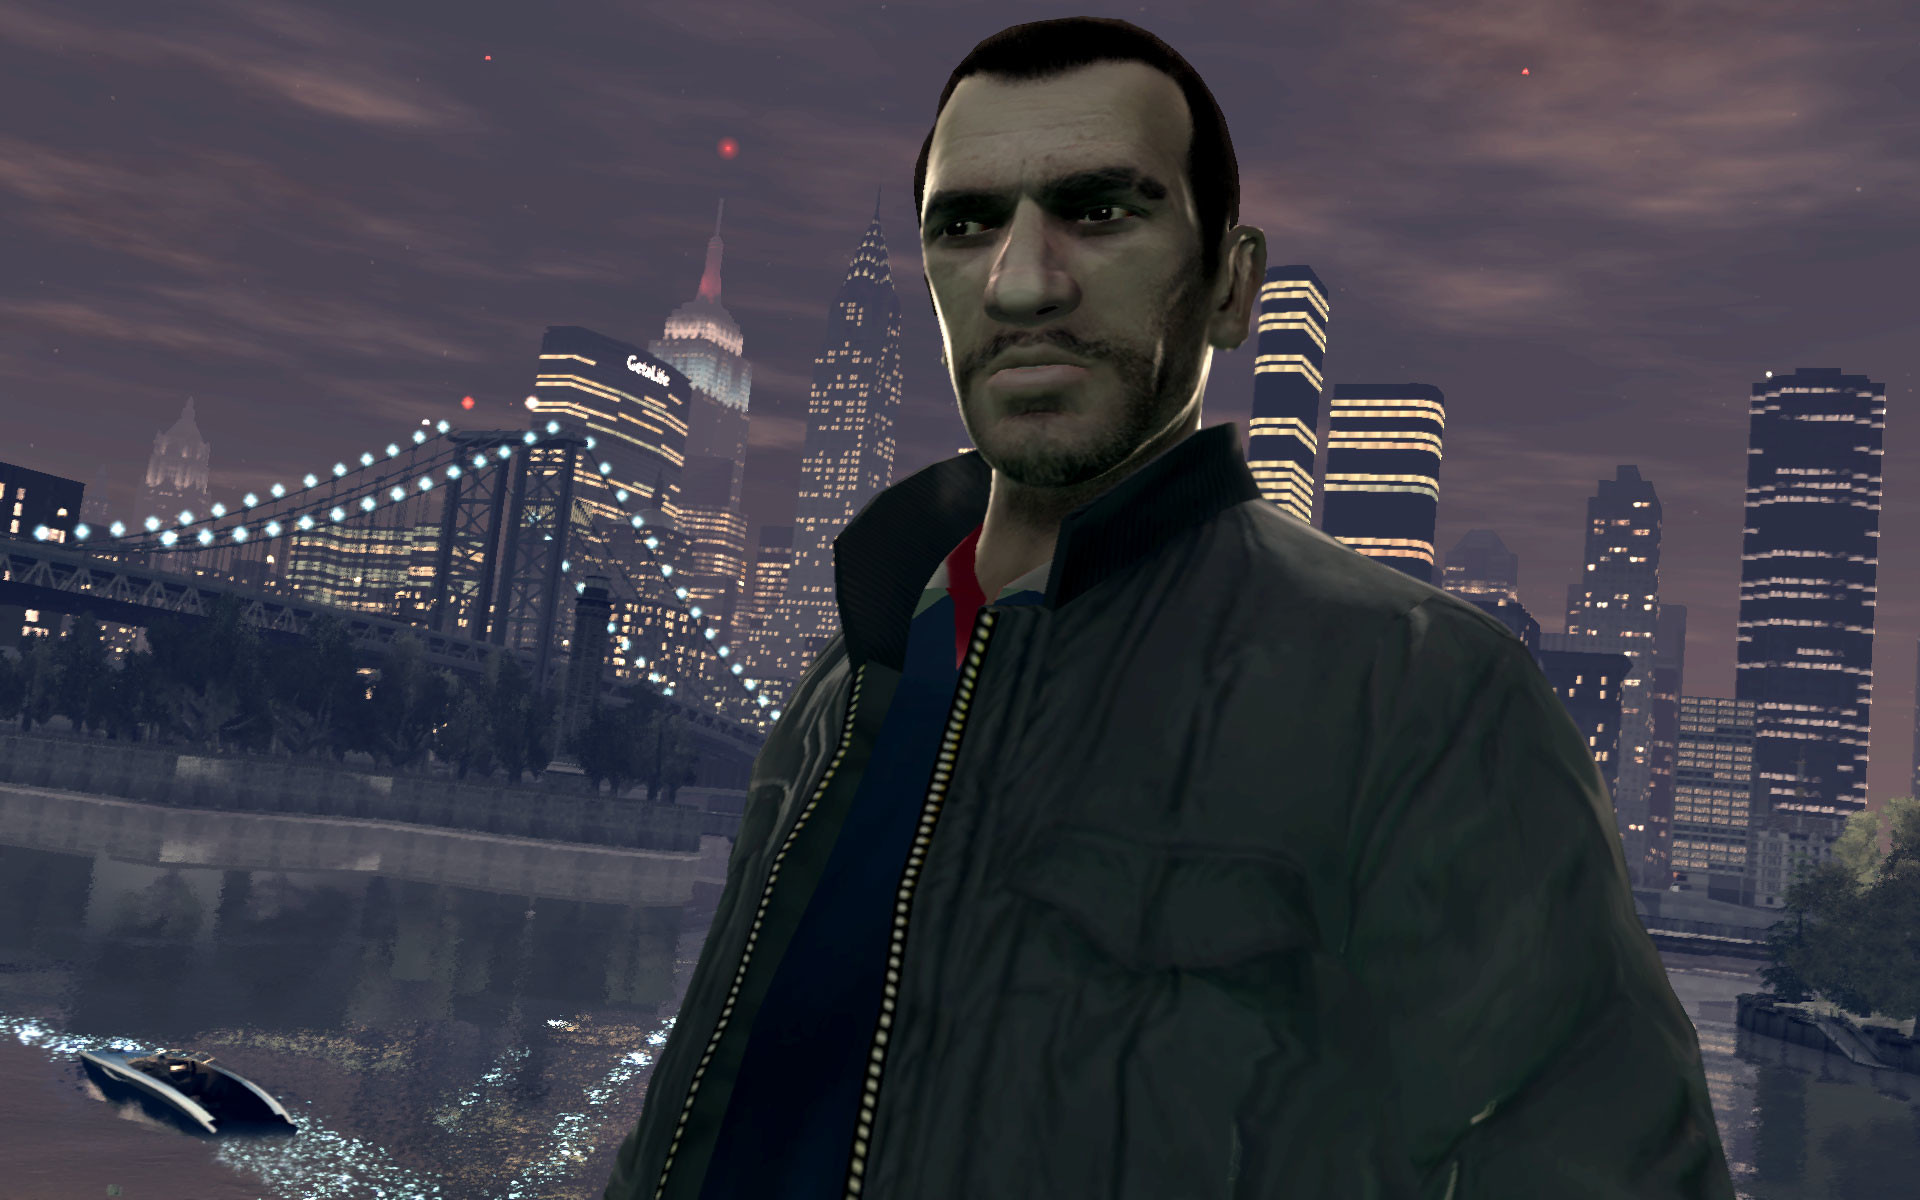 Res: 1920x1200, Niko Bellic